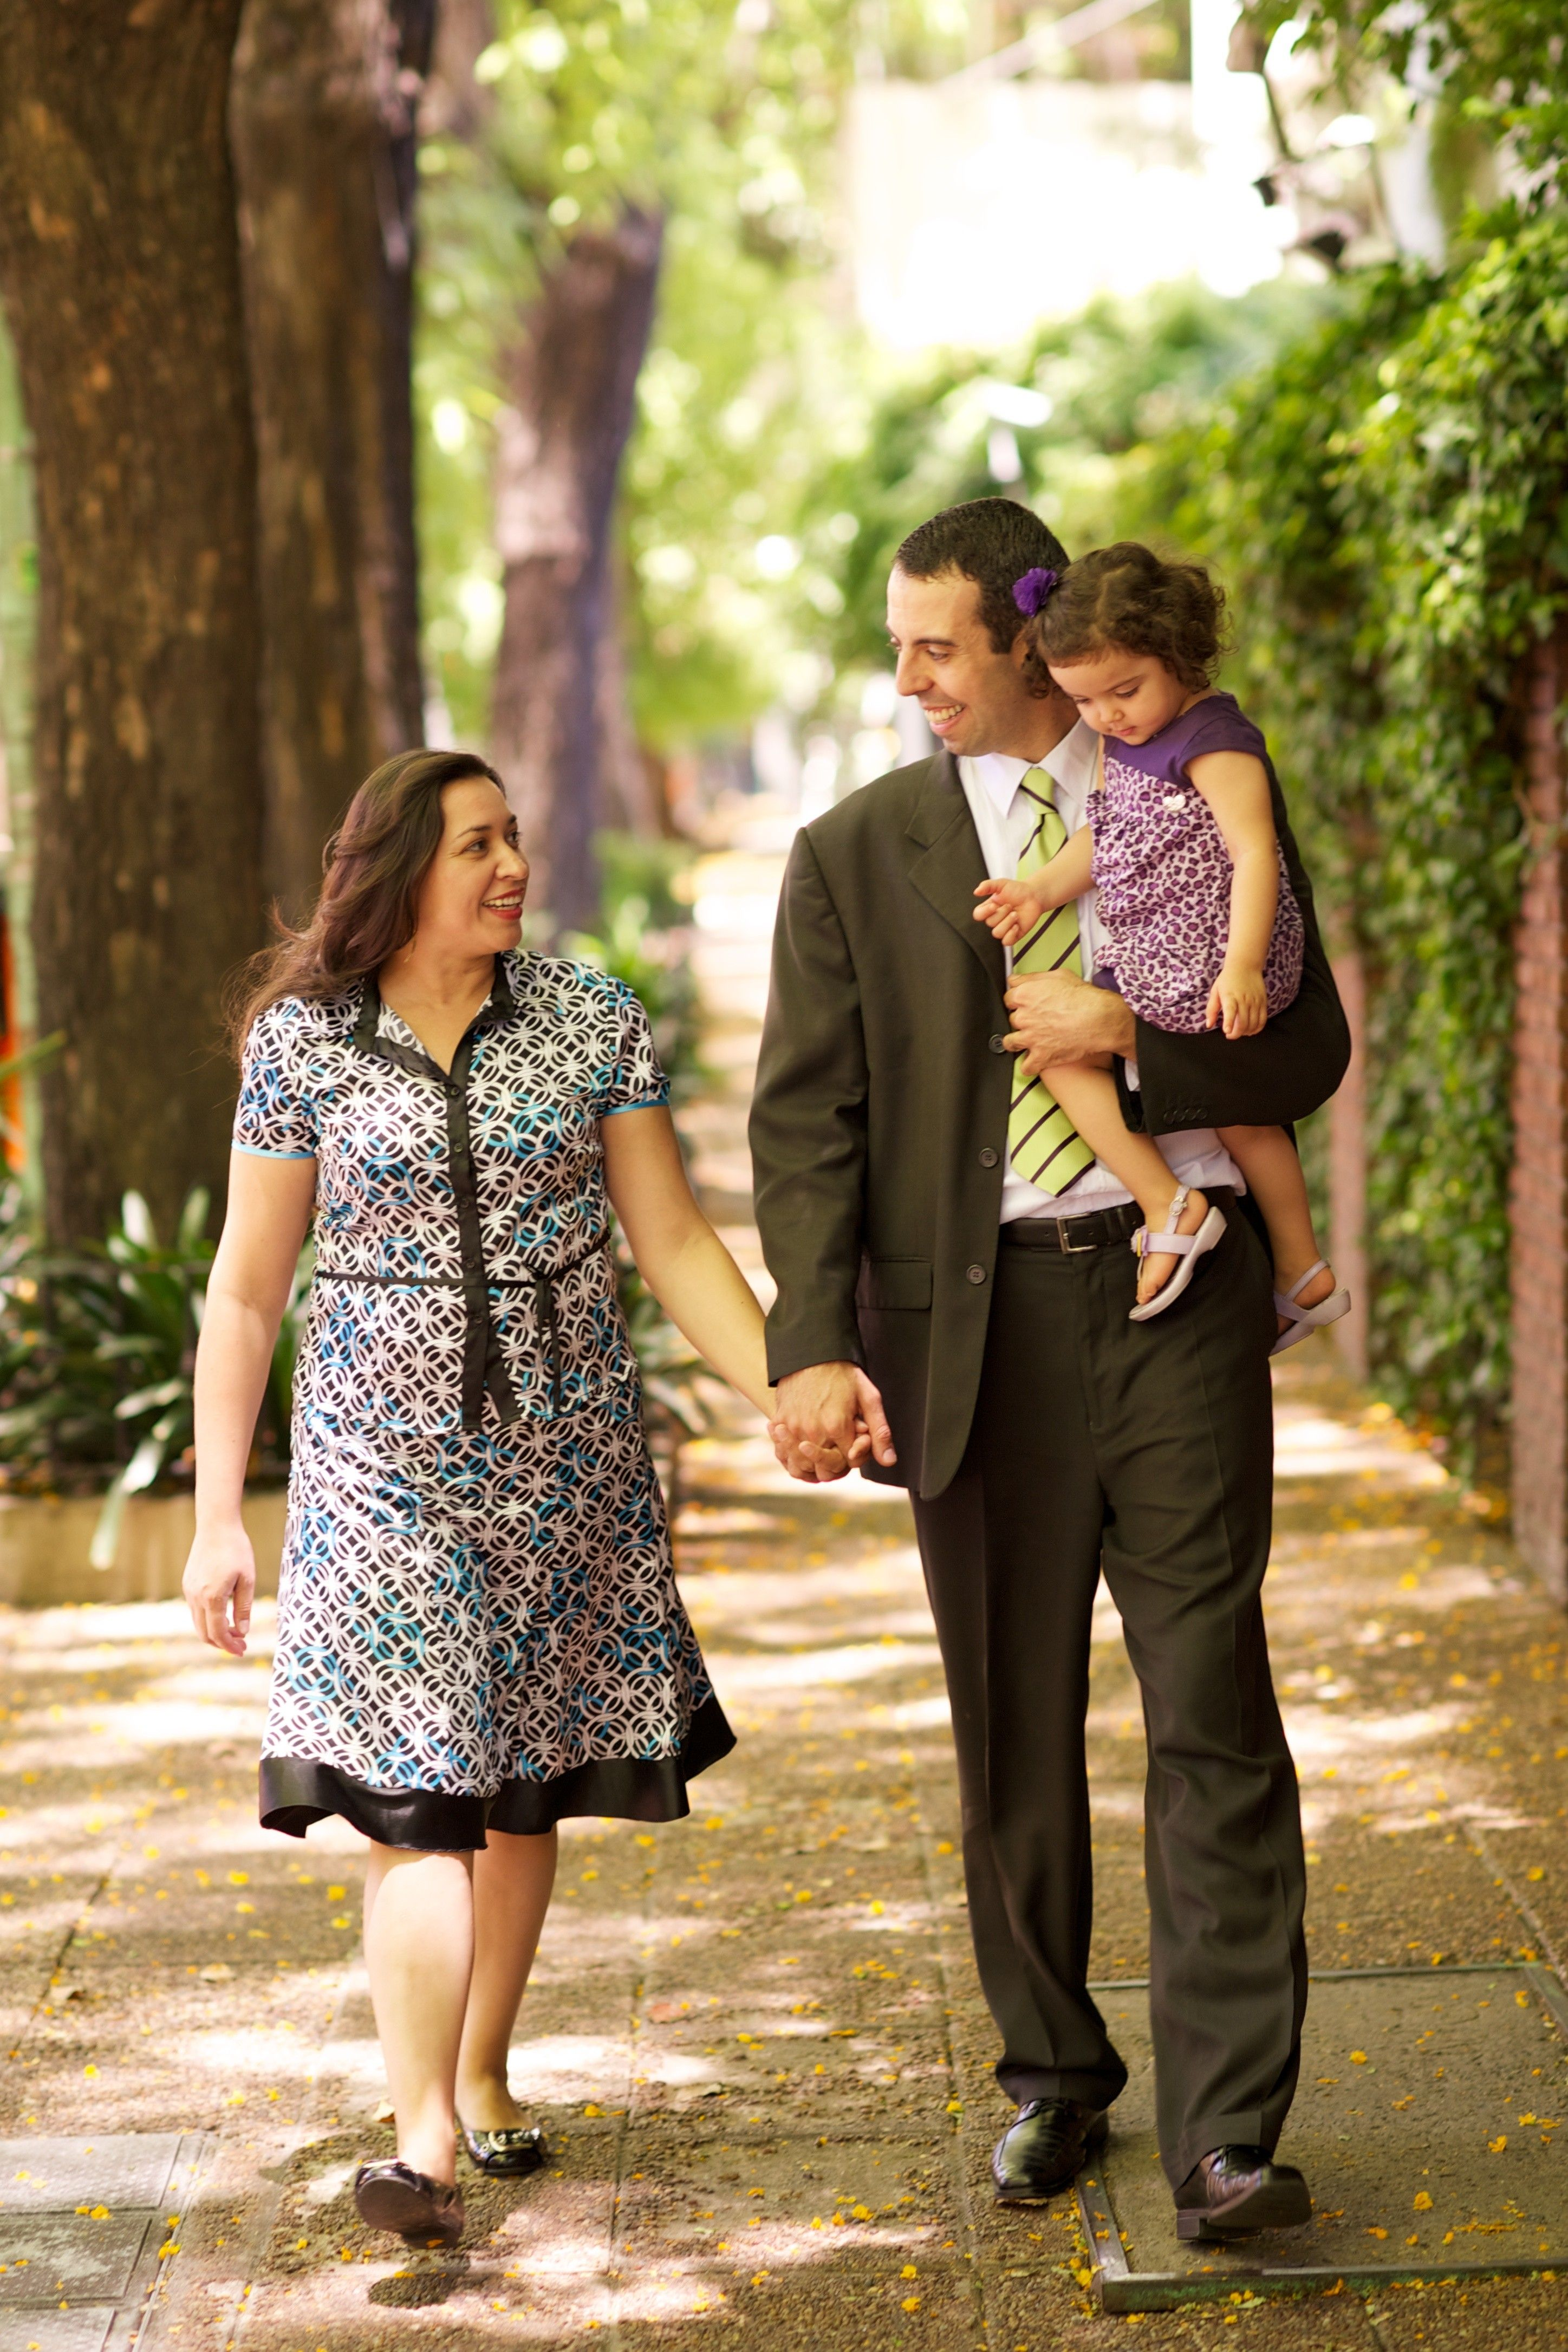 Two parents walk with their daughter in Argentina.